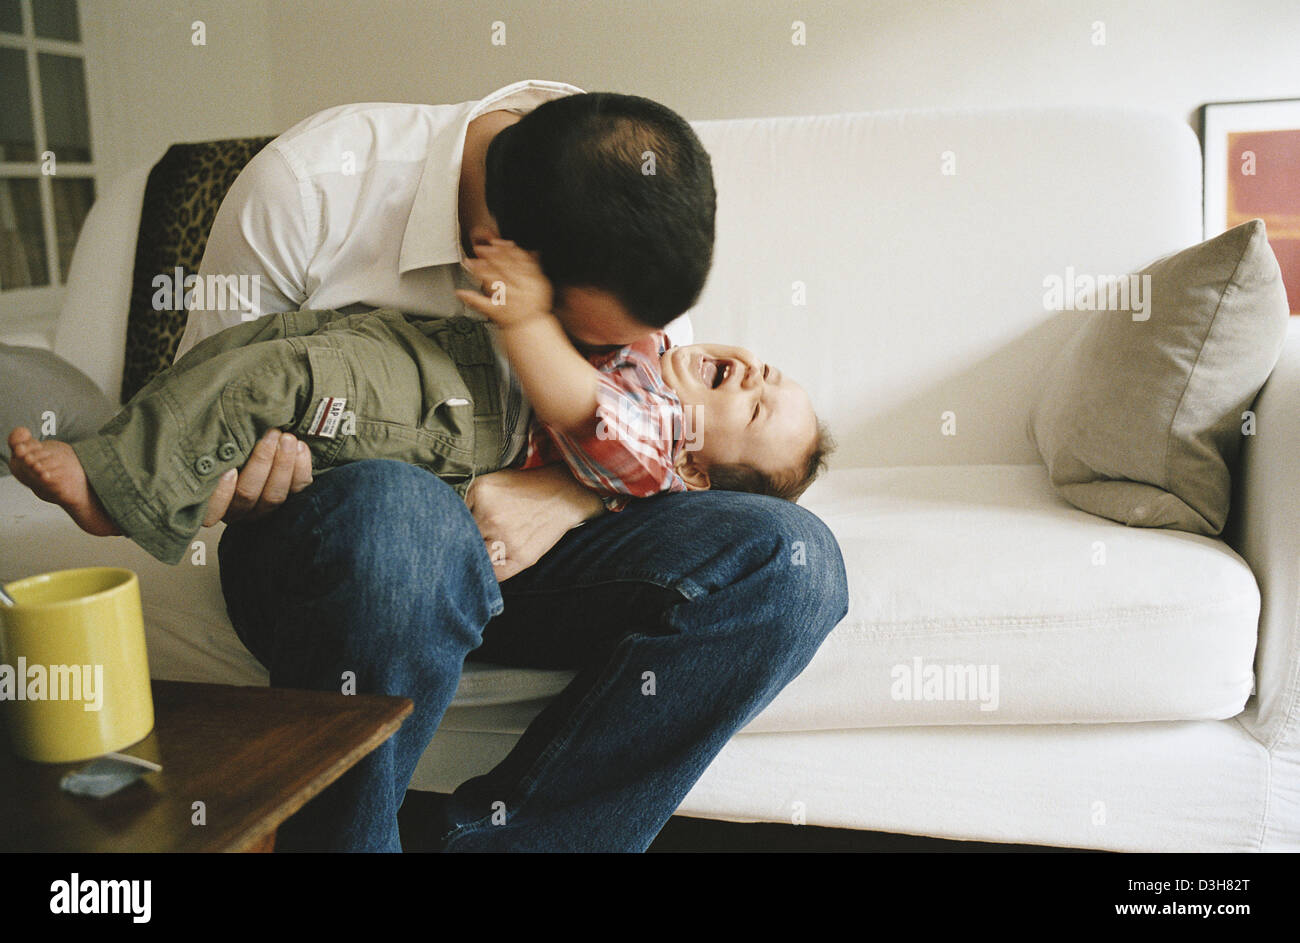 FATHER & INFANT - Stock Image